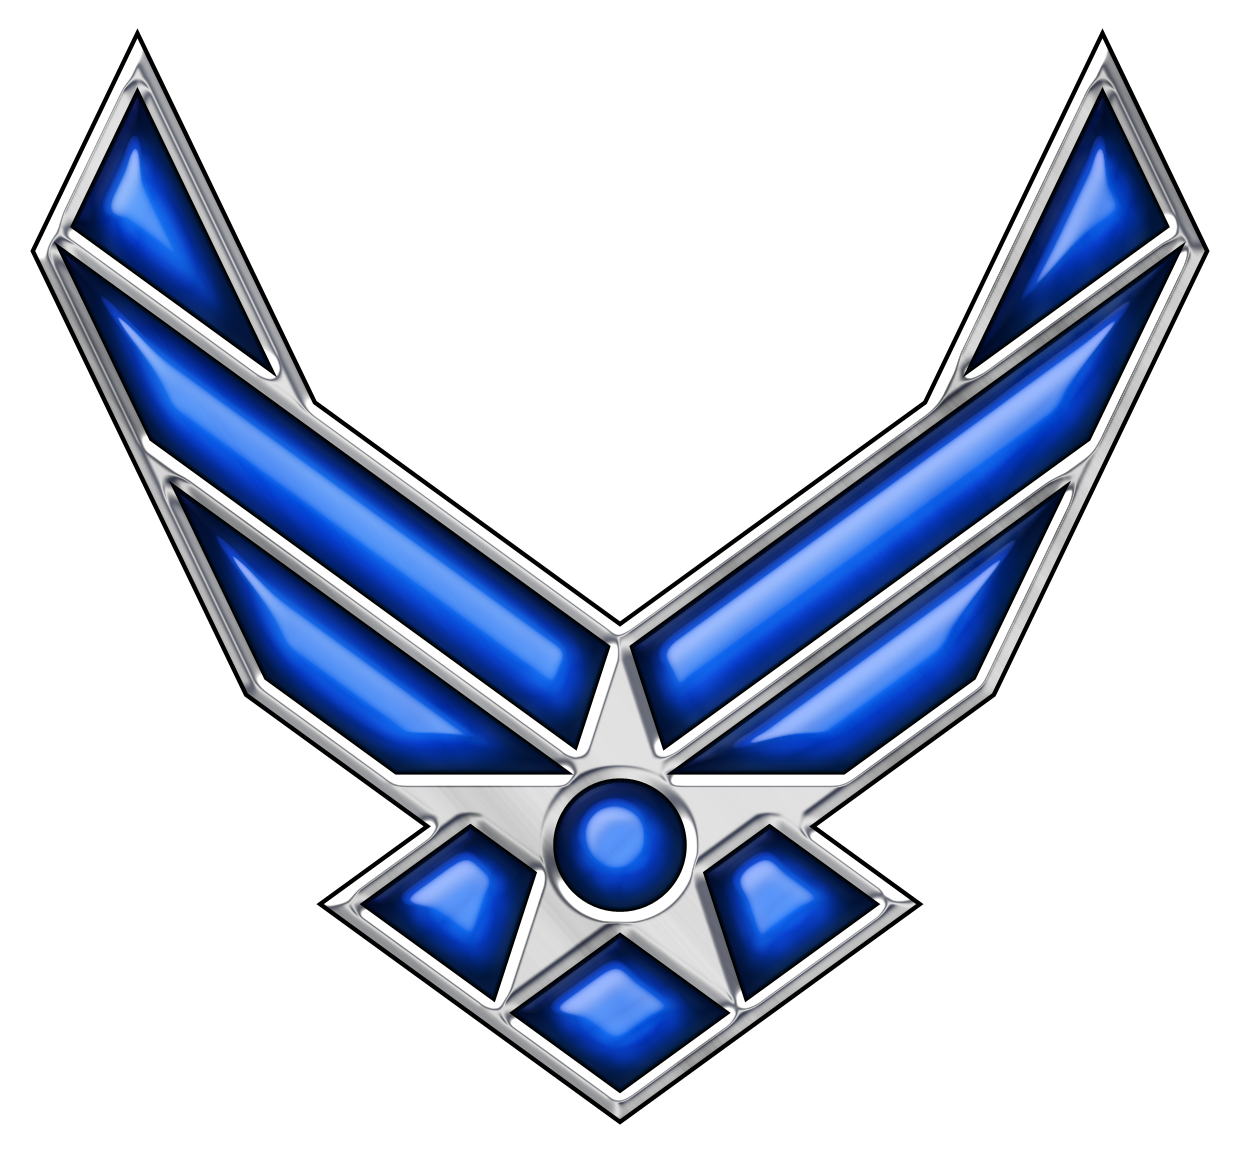 Air Force Logo Png image #29346